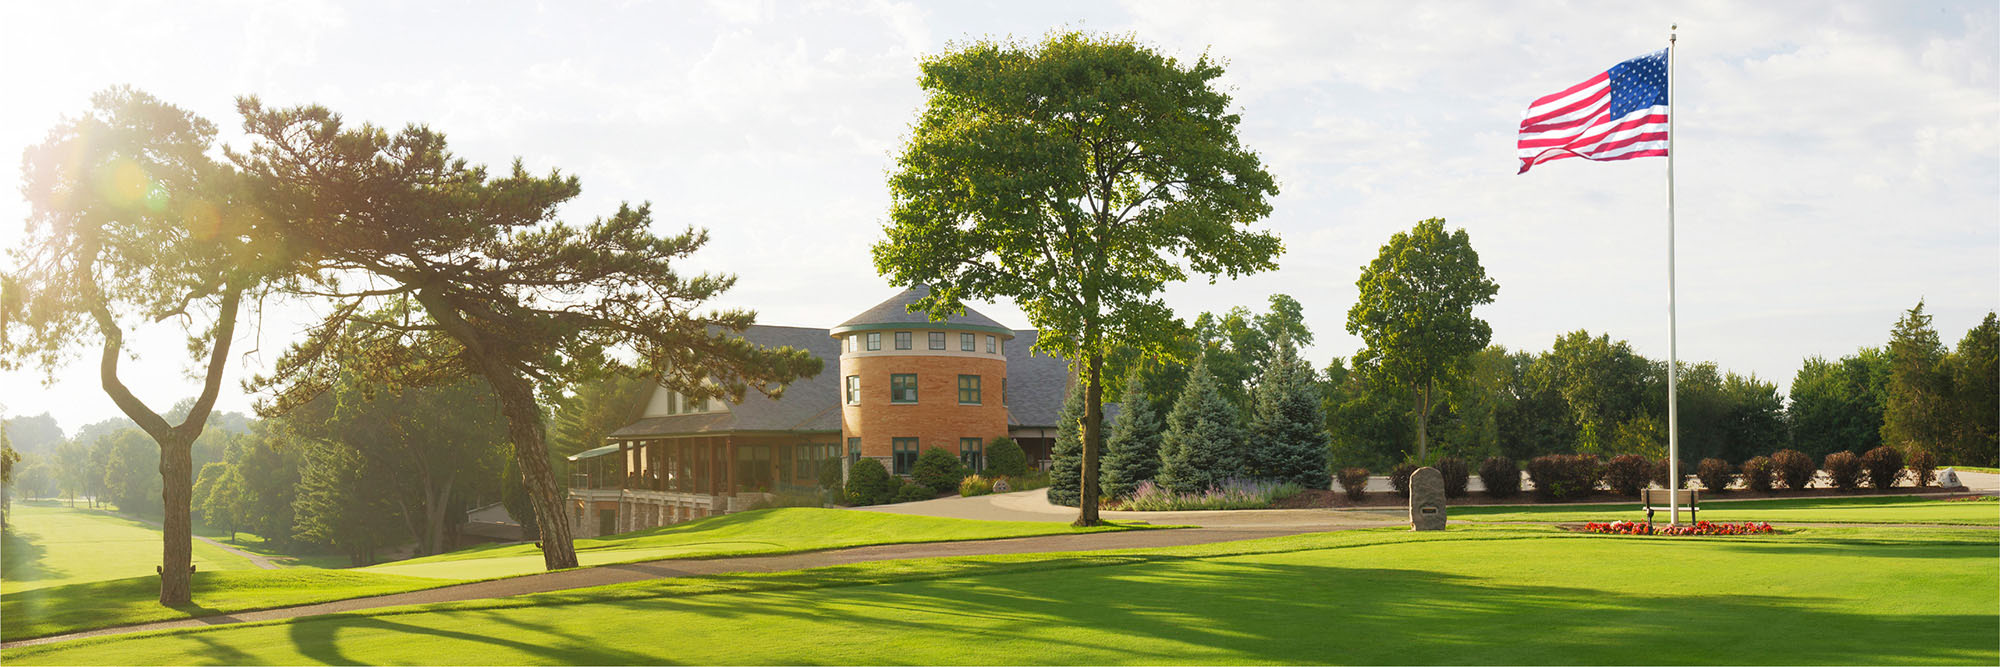 Golf Course Image - South Bend Clubhouse